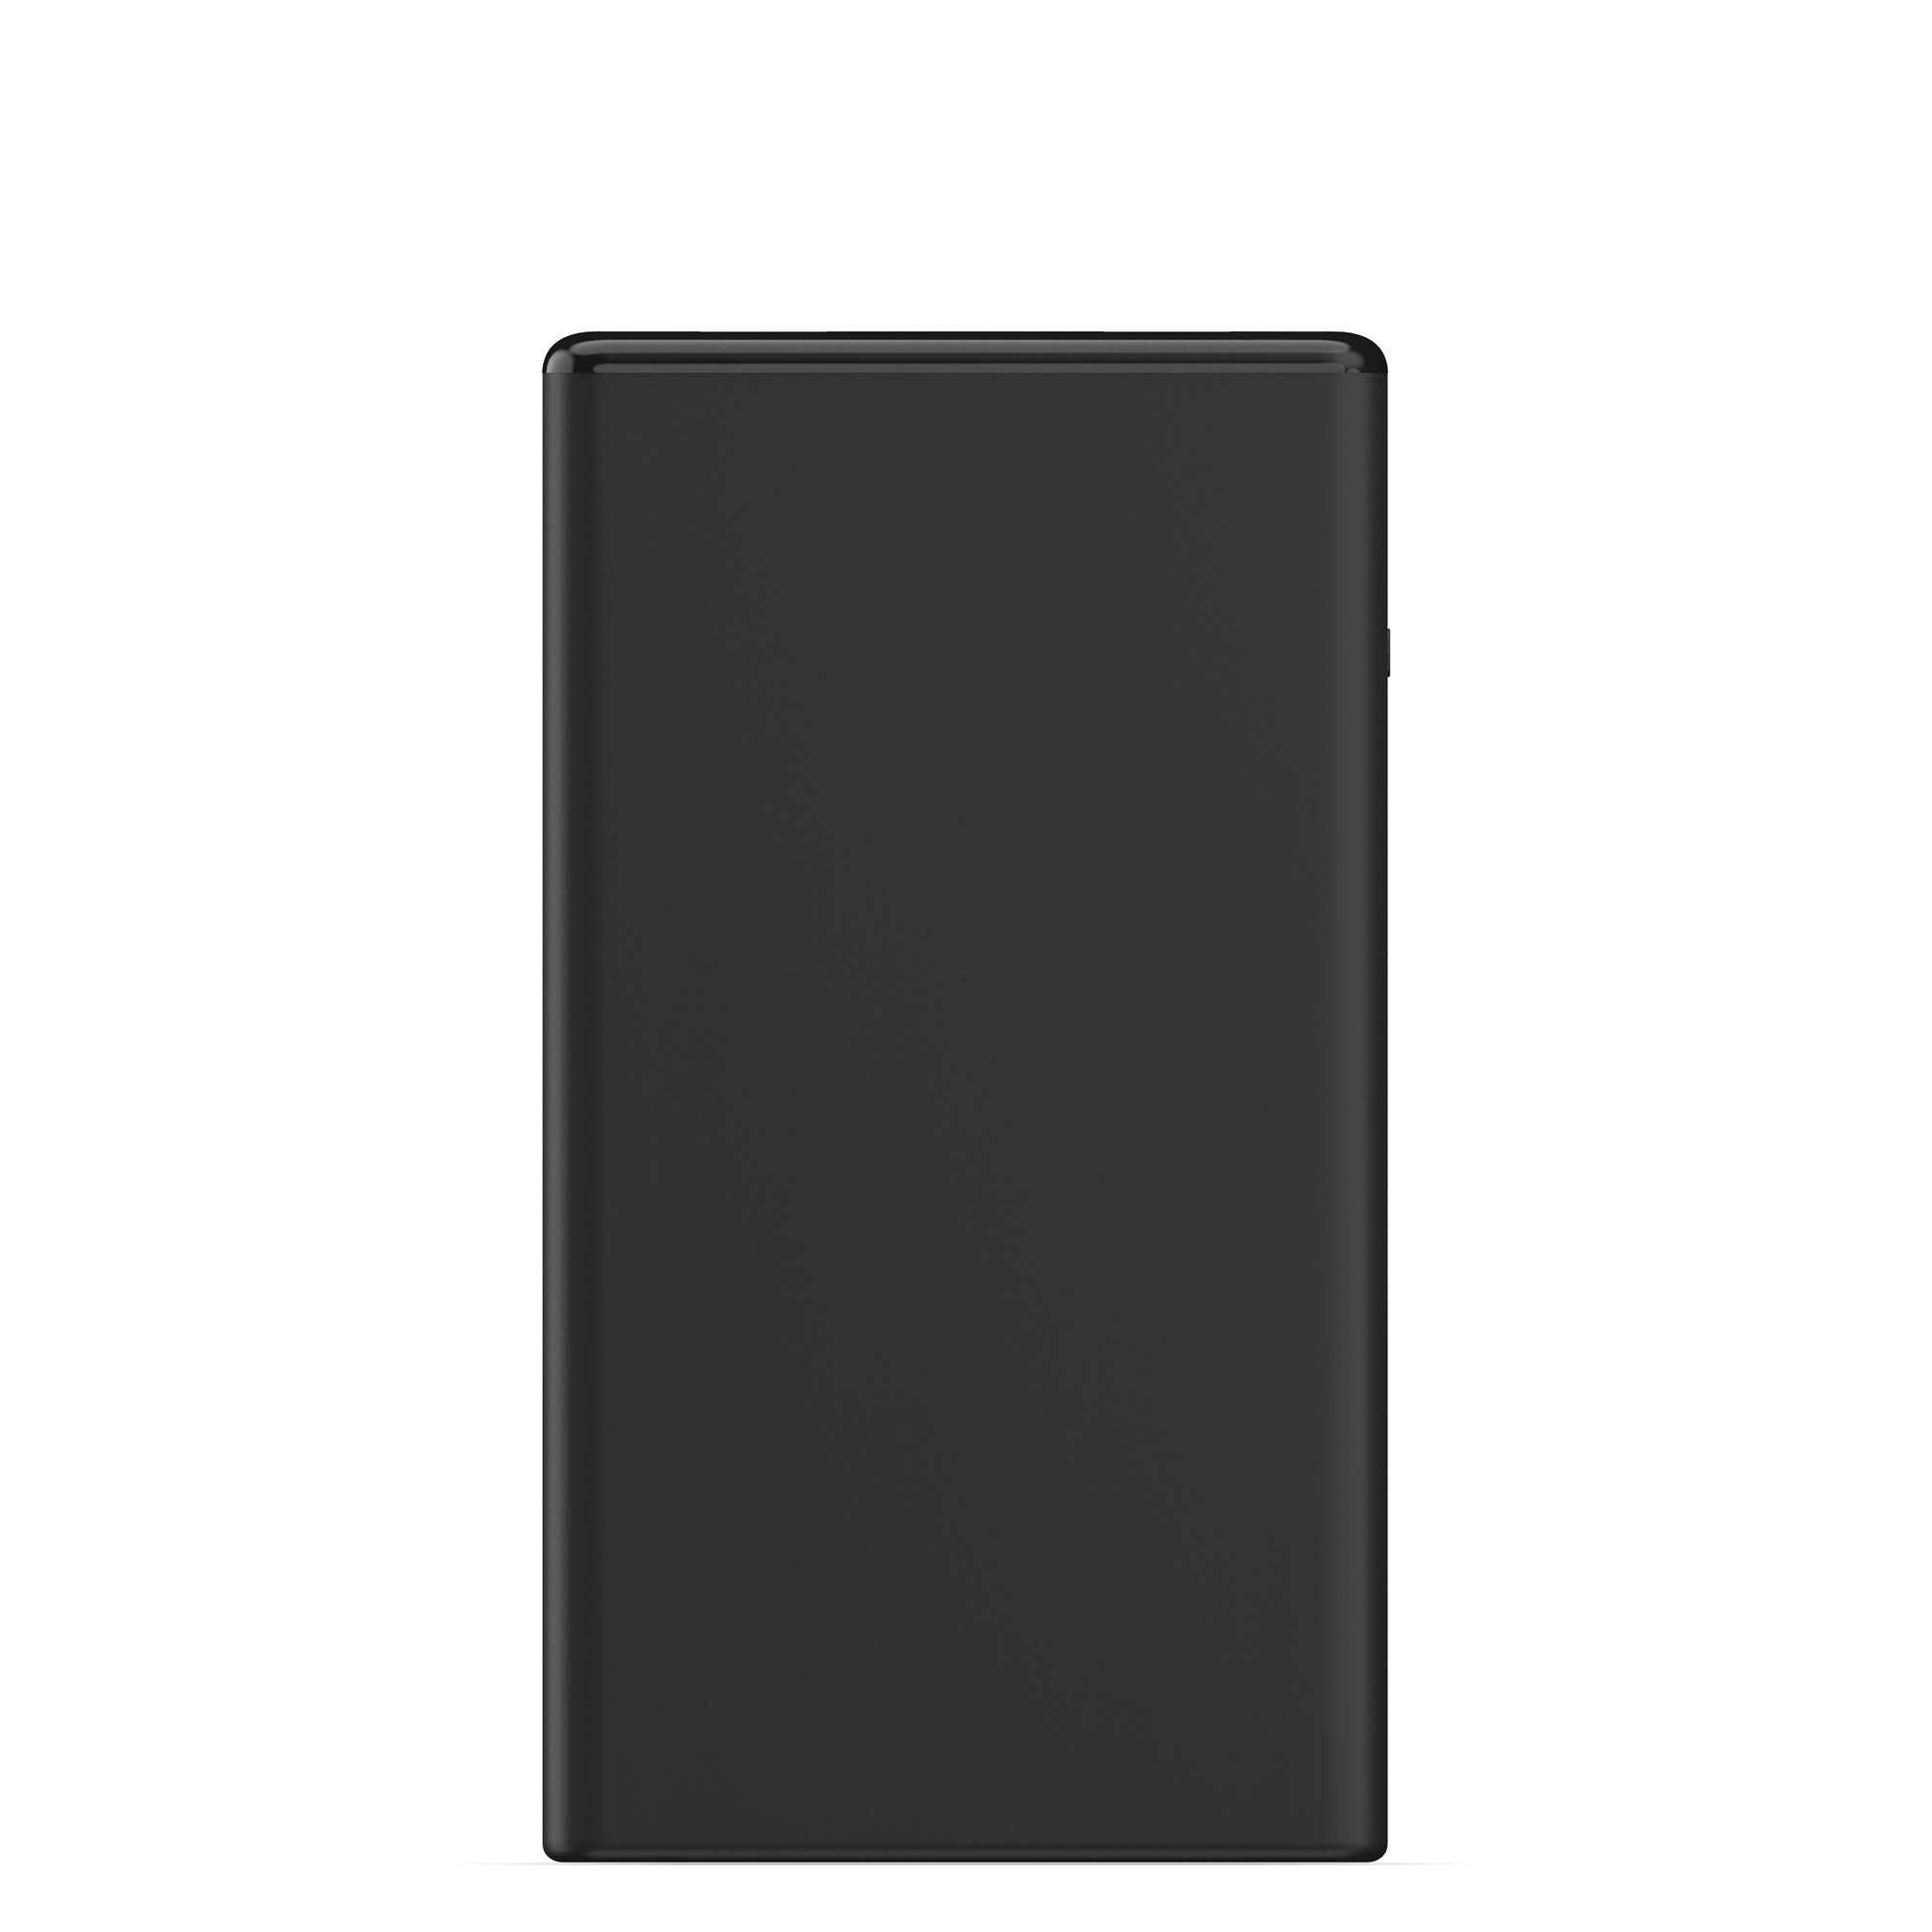 mophie Power Boost XXL Universal External Battery - 8 Charges (20,800mAh ) - Black by mophie (Image #2)